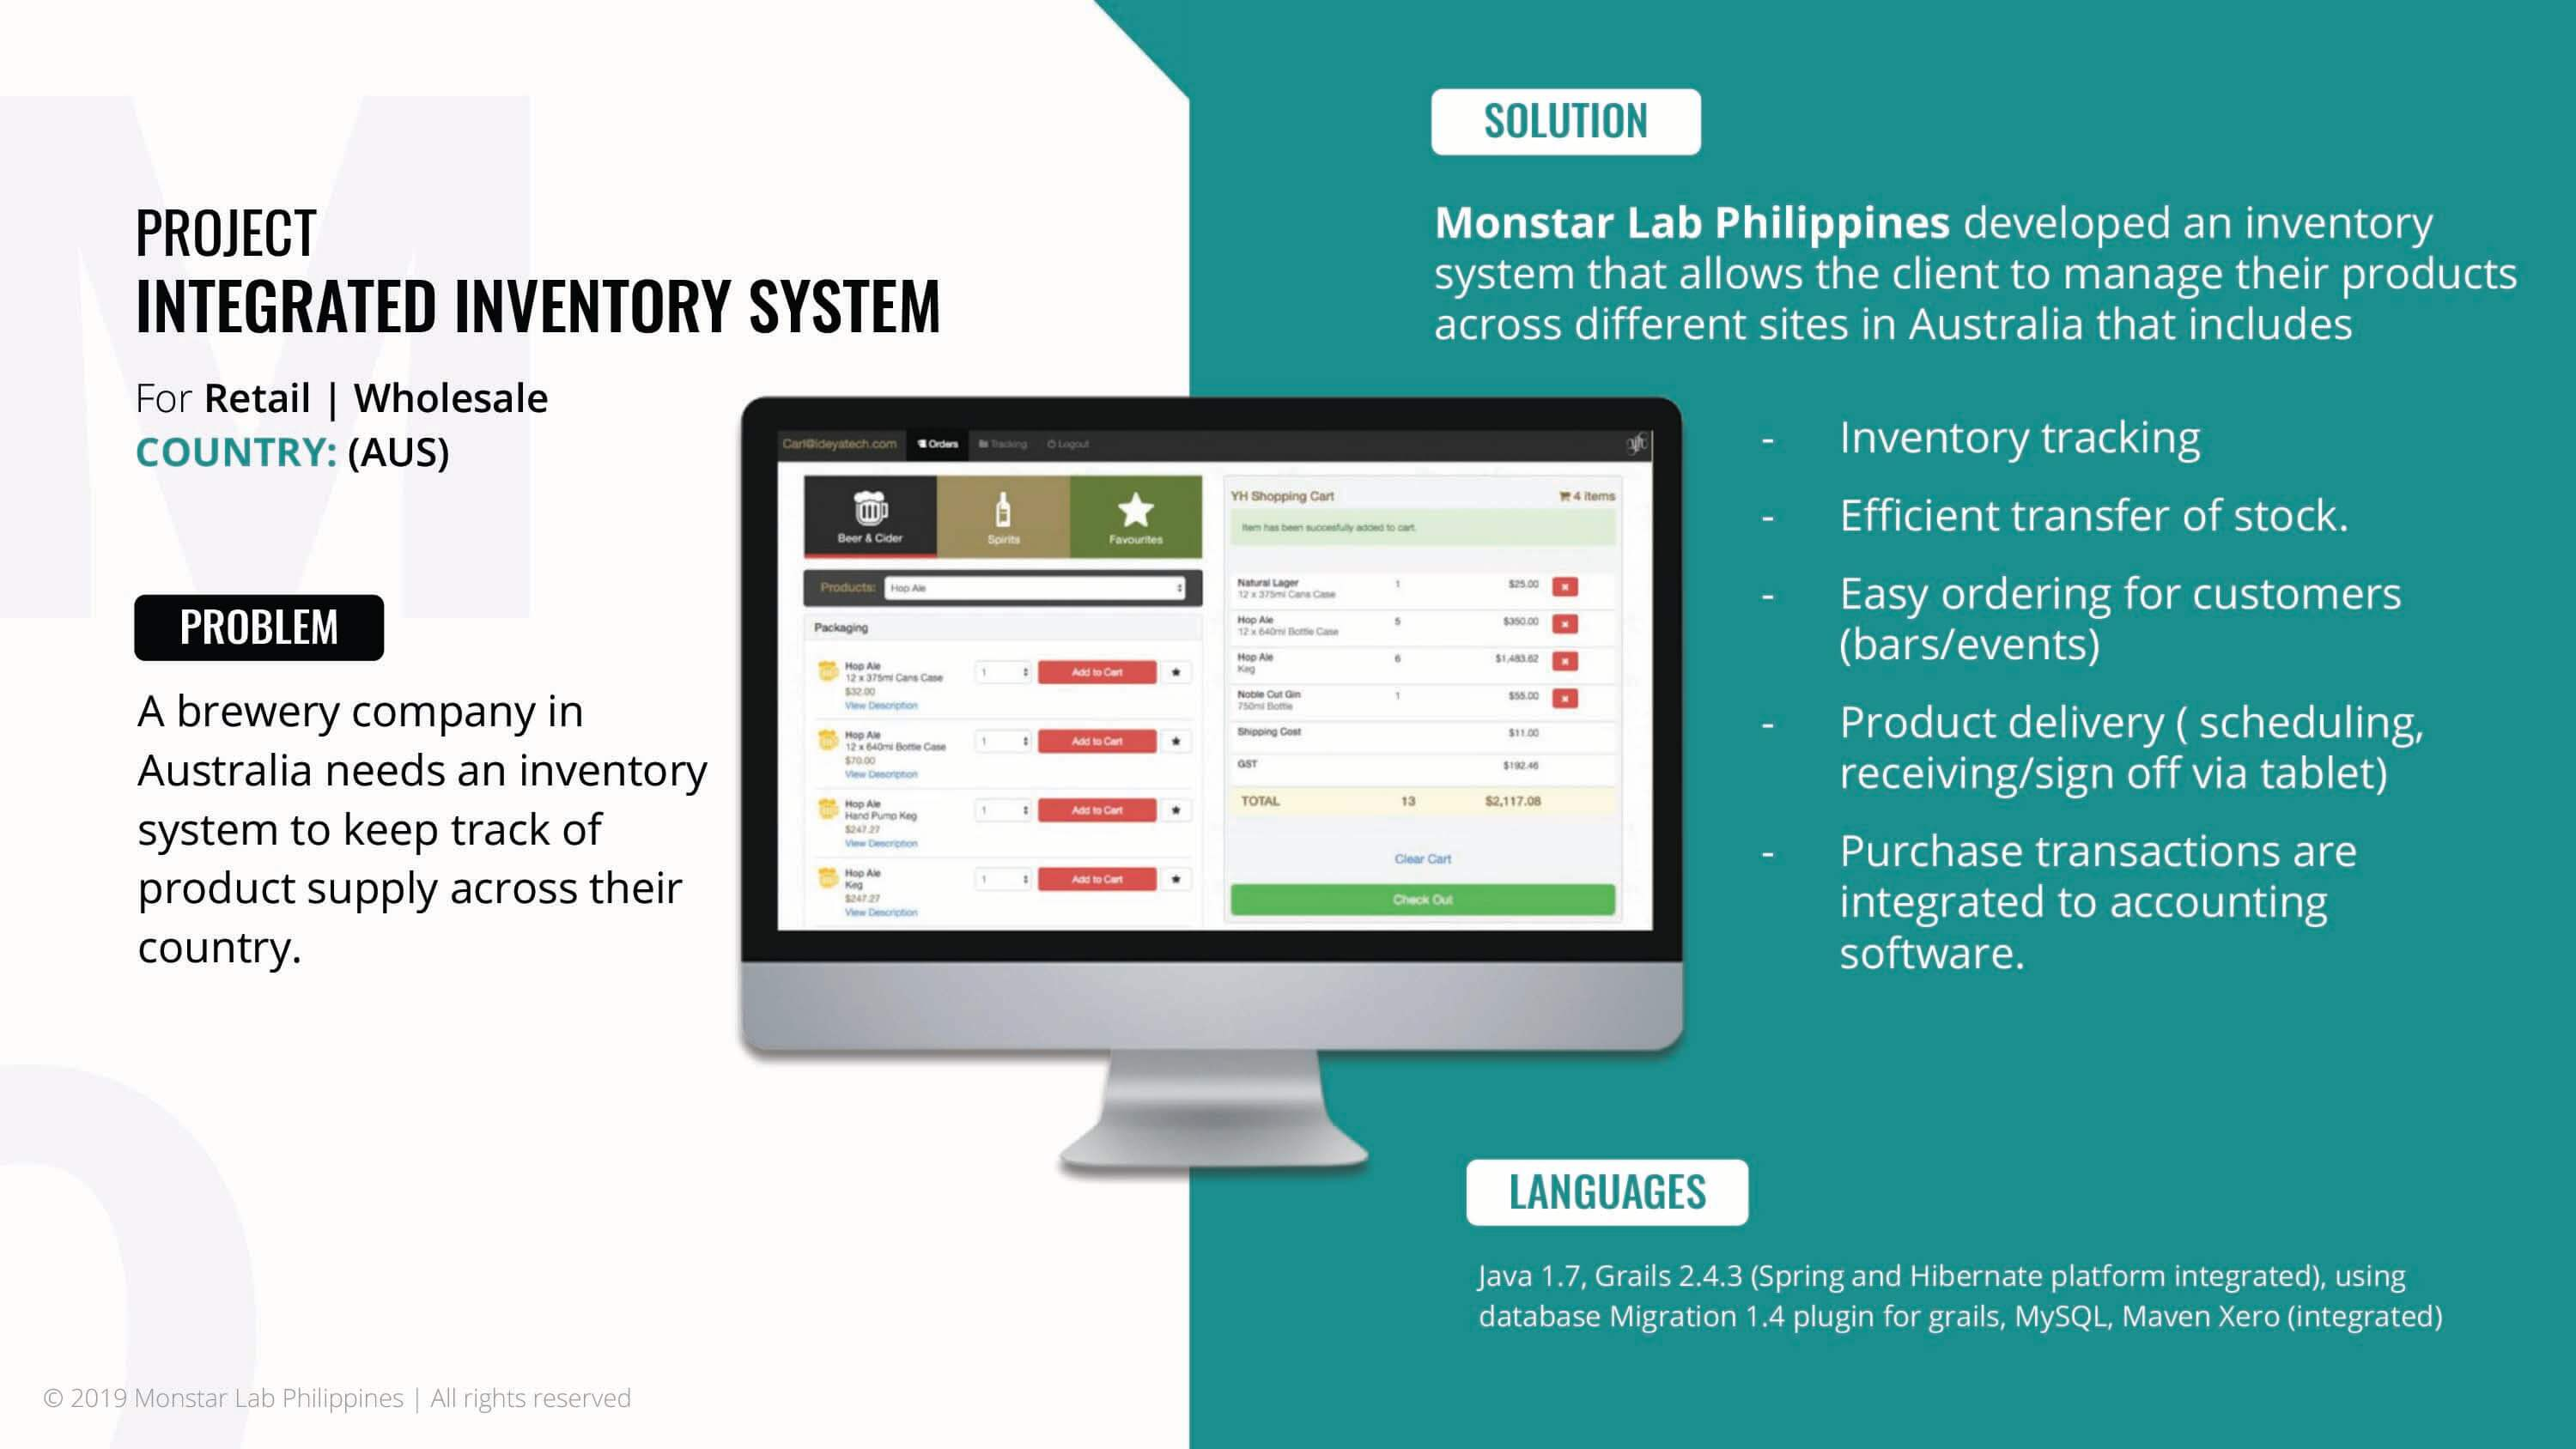 Web application development, Monstar Lab PH integrated inventory system case study problem